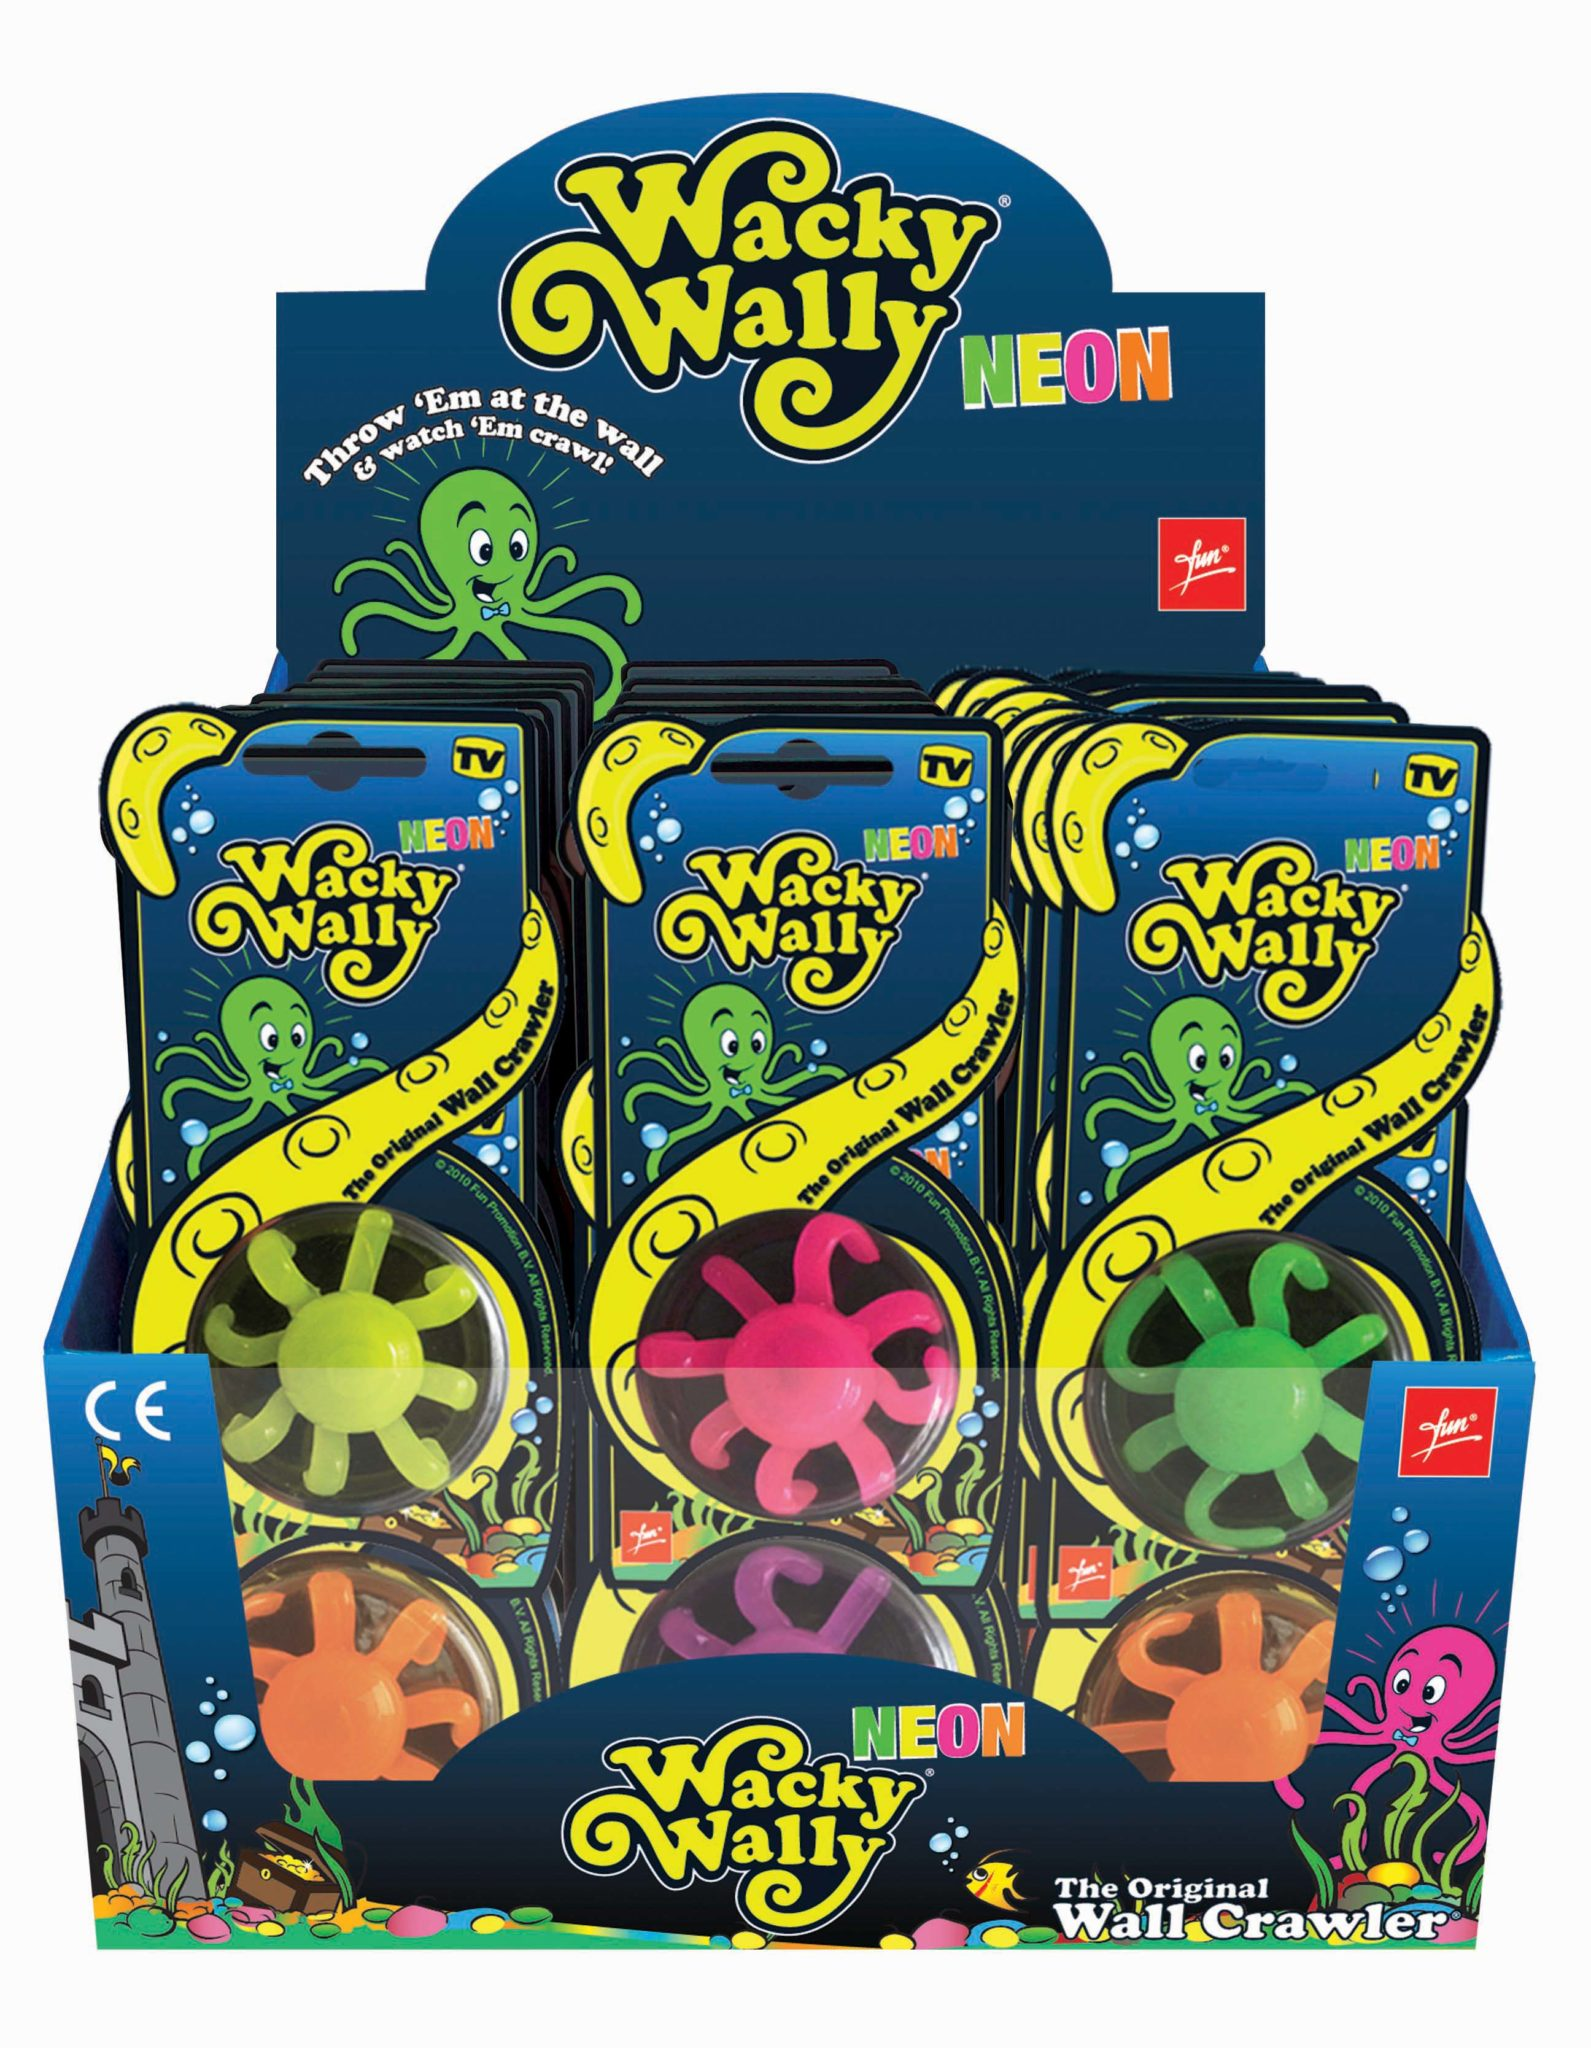 Wacky Wally Neon The Wall crawler